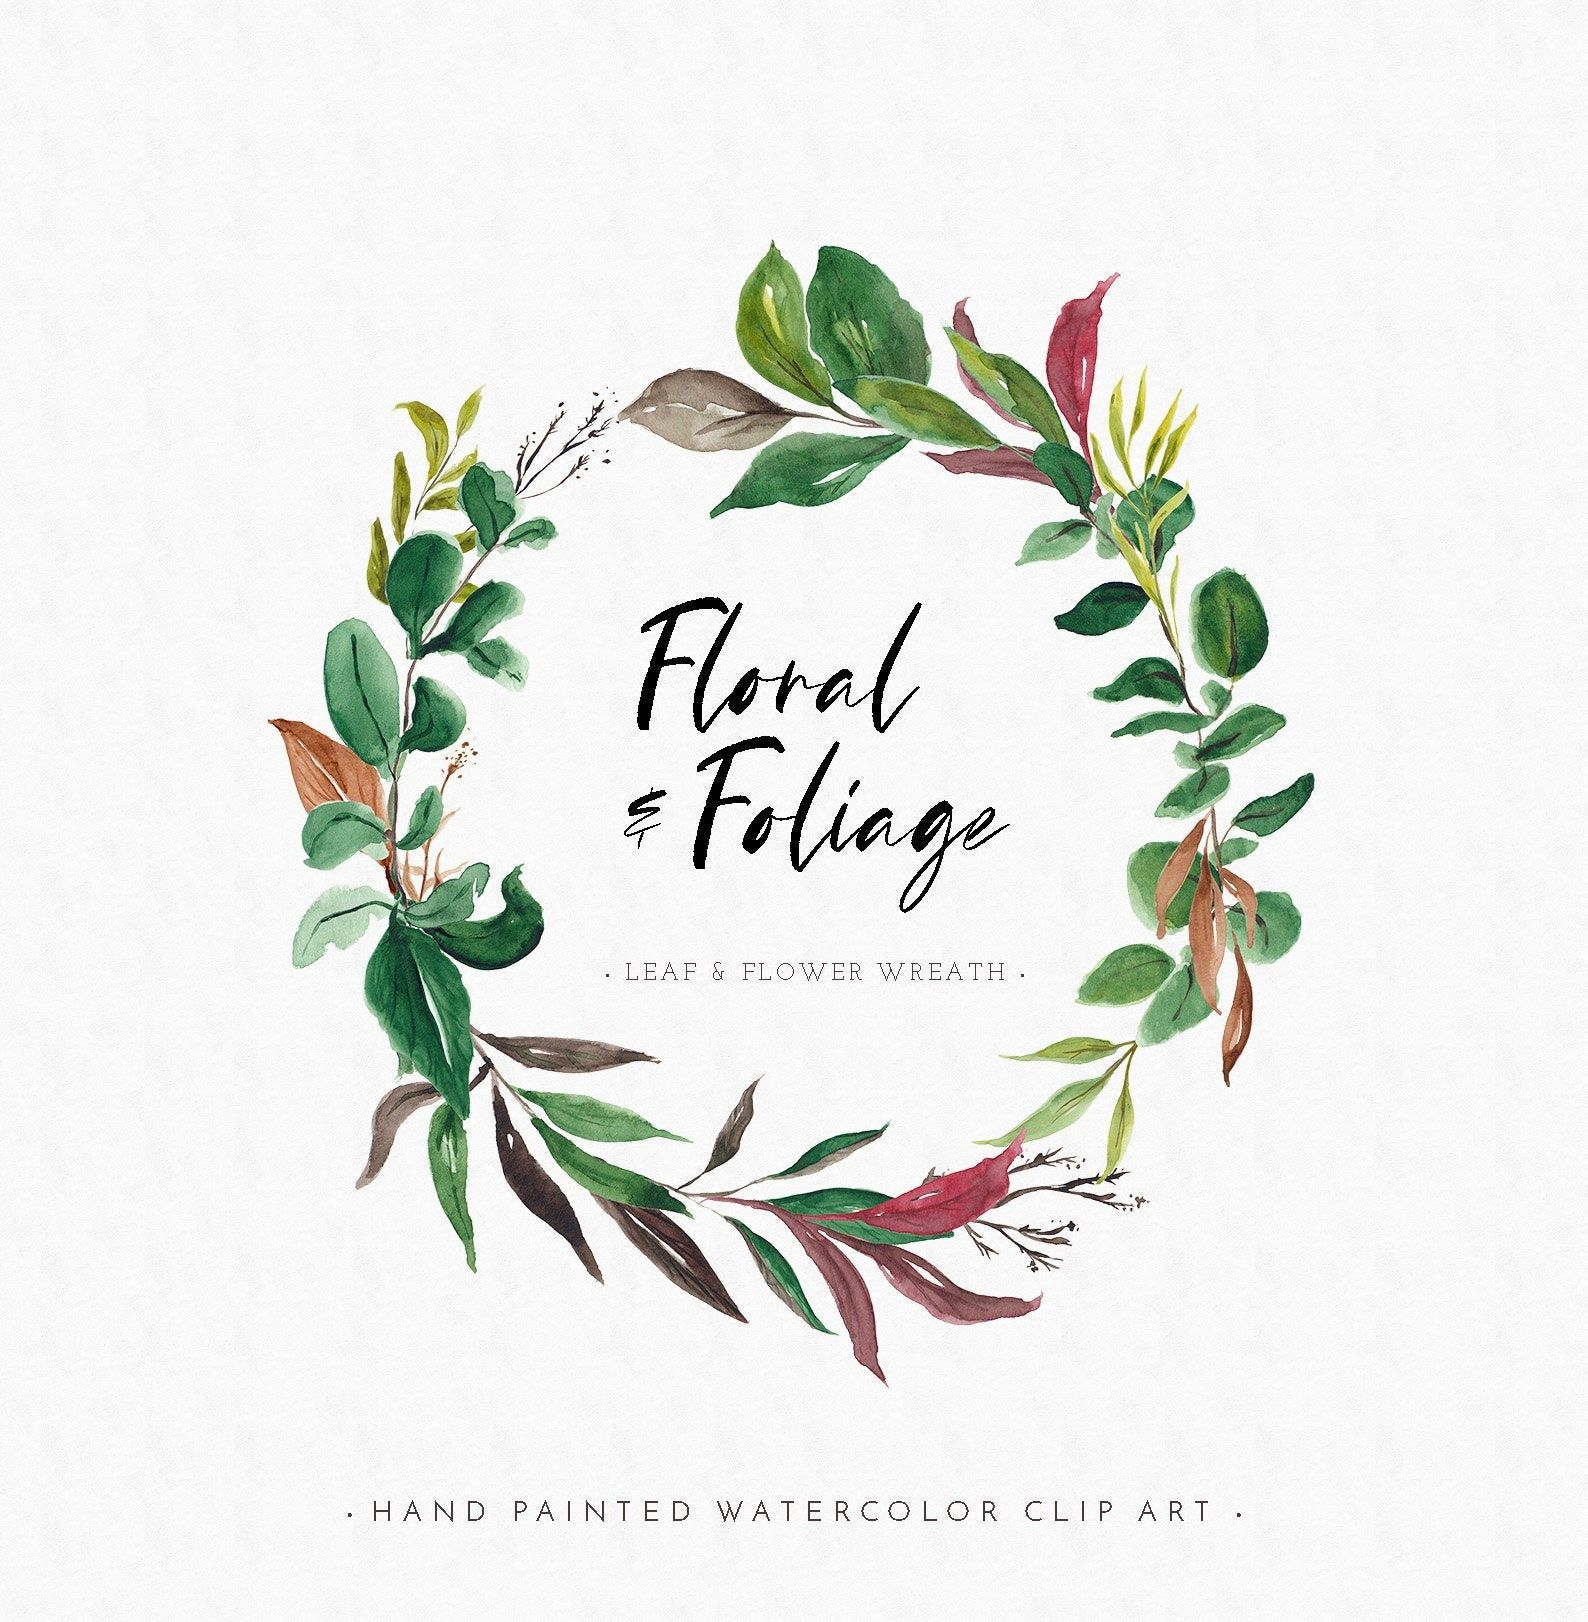 Floral Foliage Watercolor Wreath Wreath Watercolor Leaf Wreath